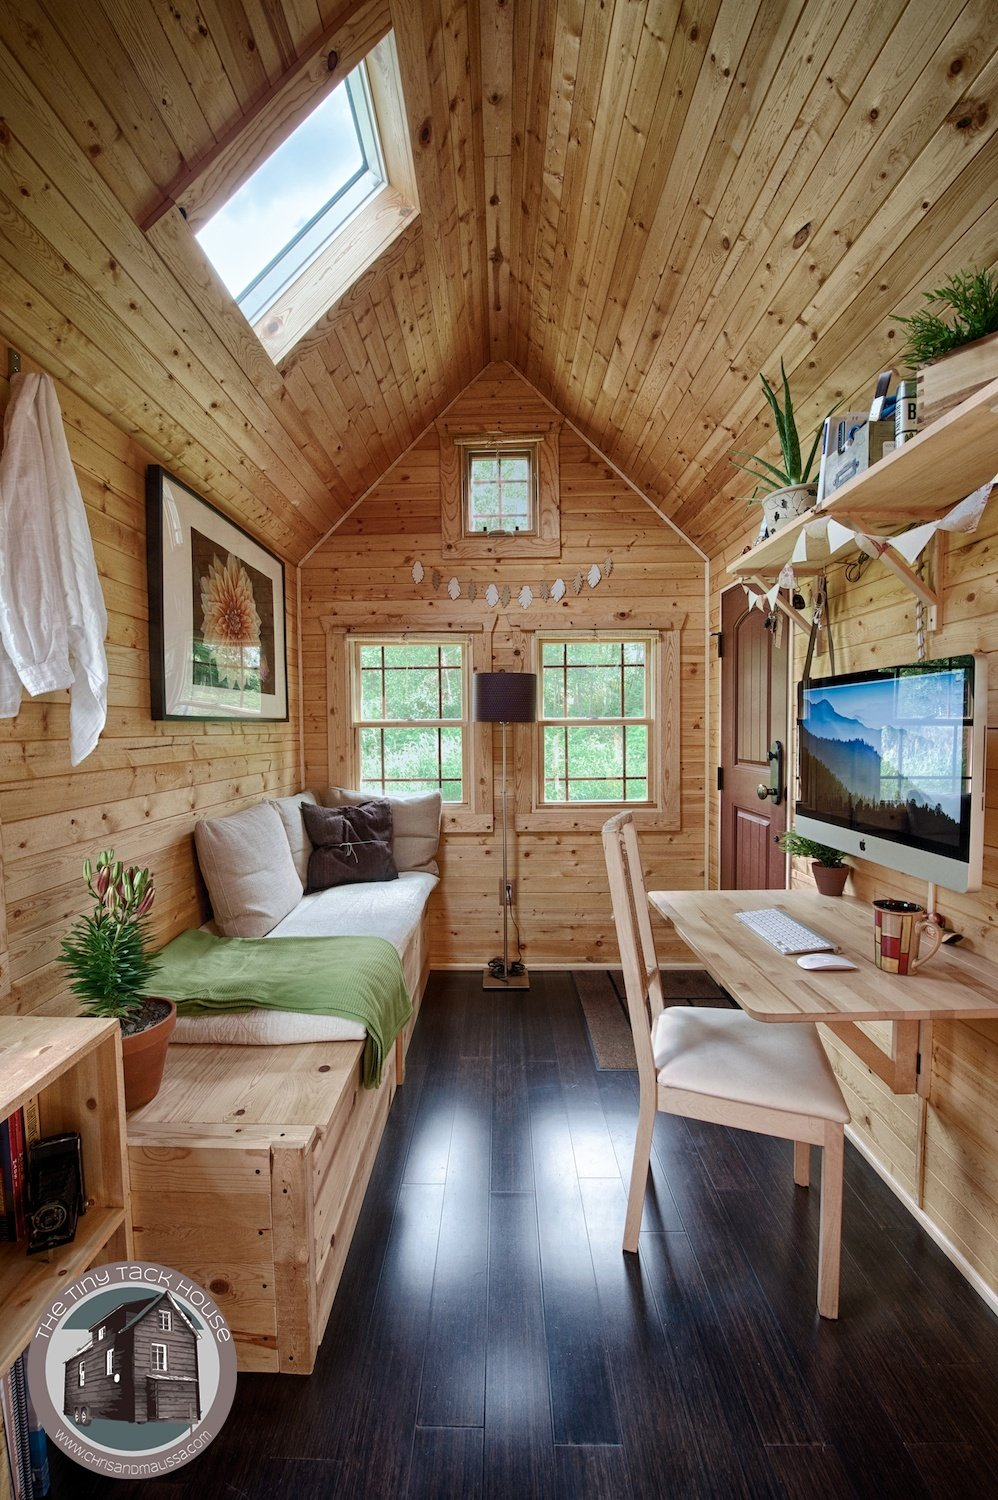 Tiny Home Designs: 16 Tiny House Interiors You Wish You Could Live In